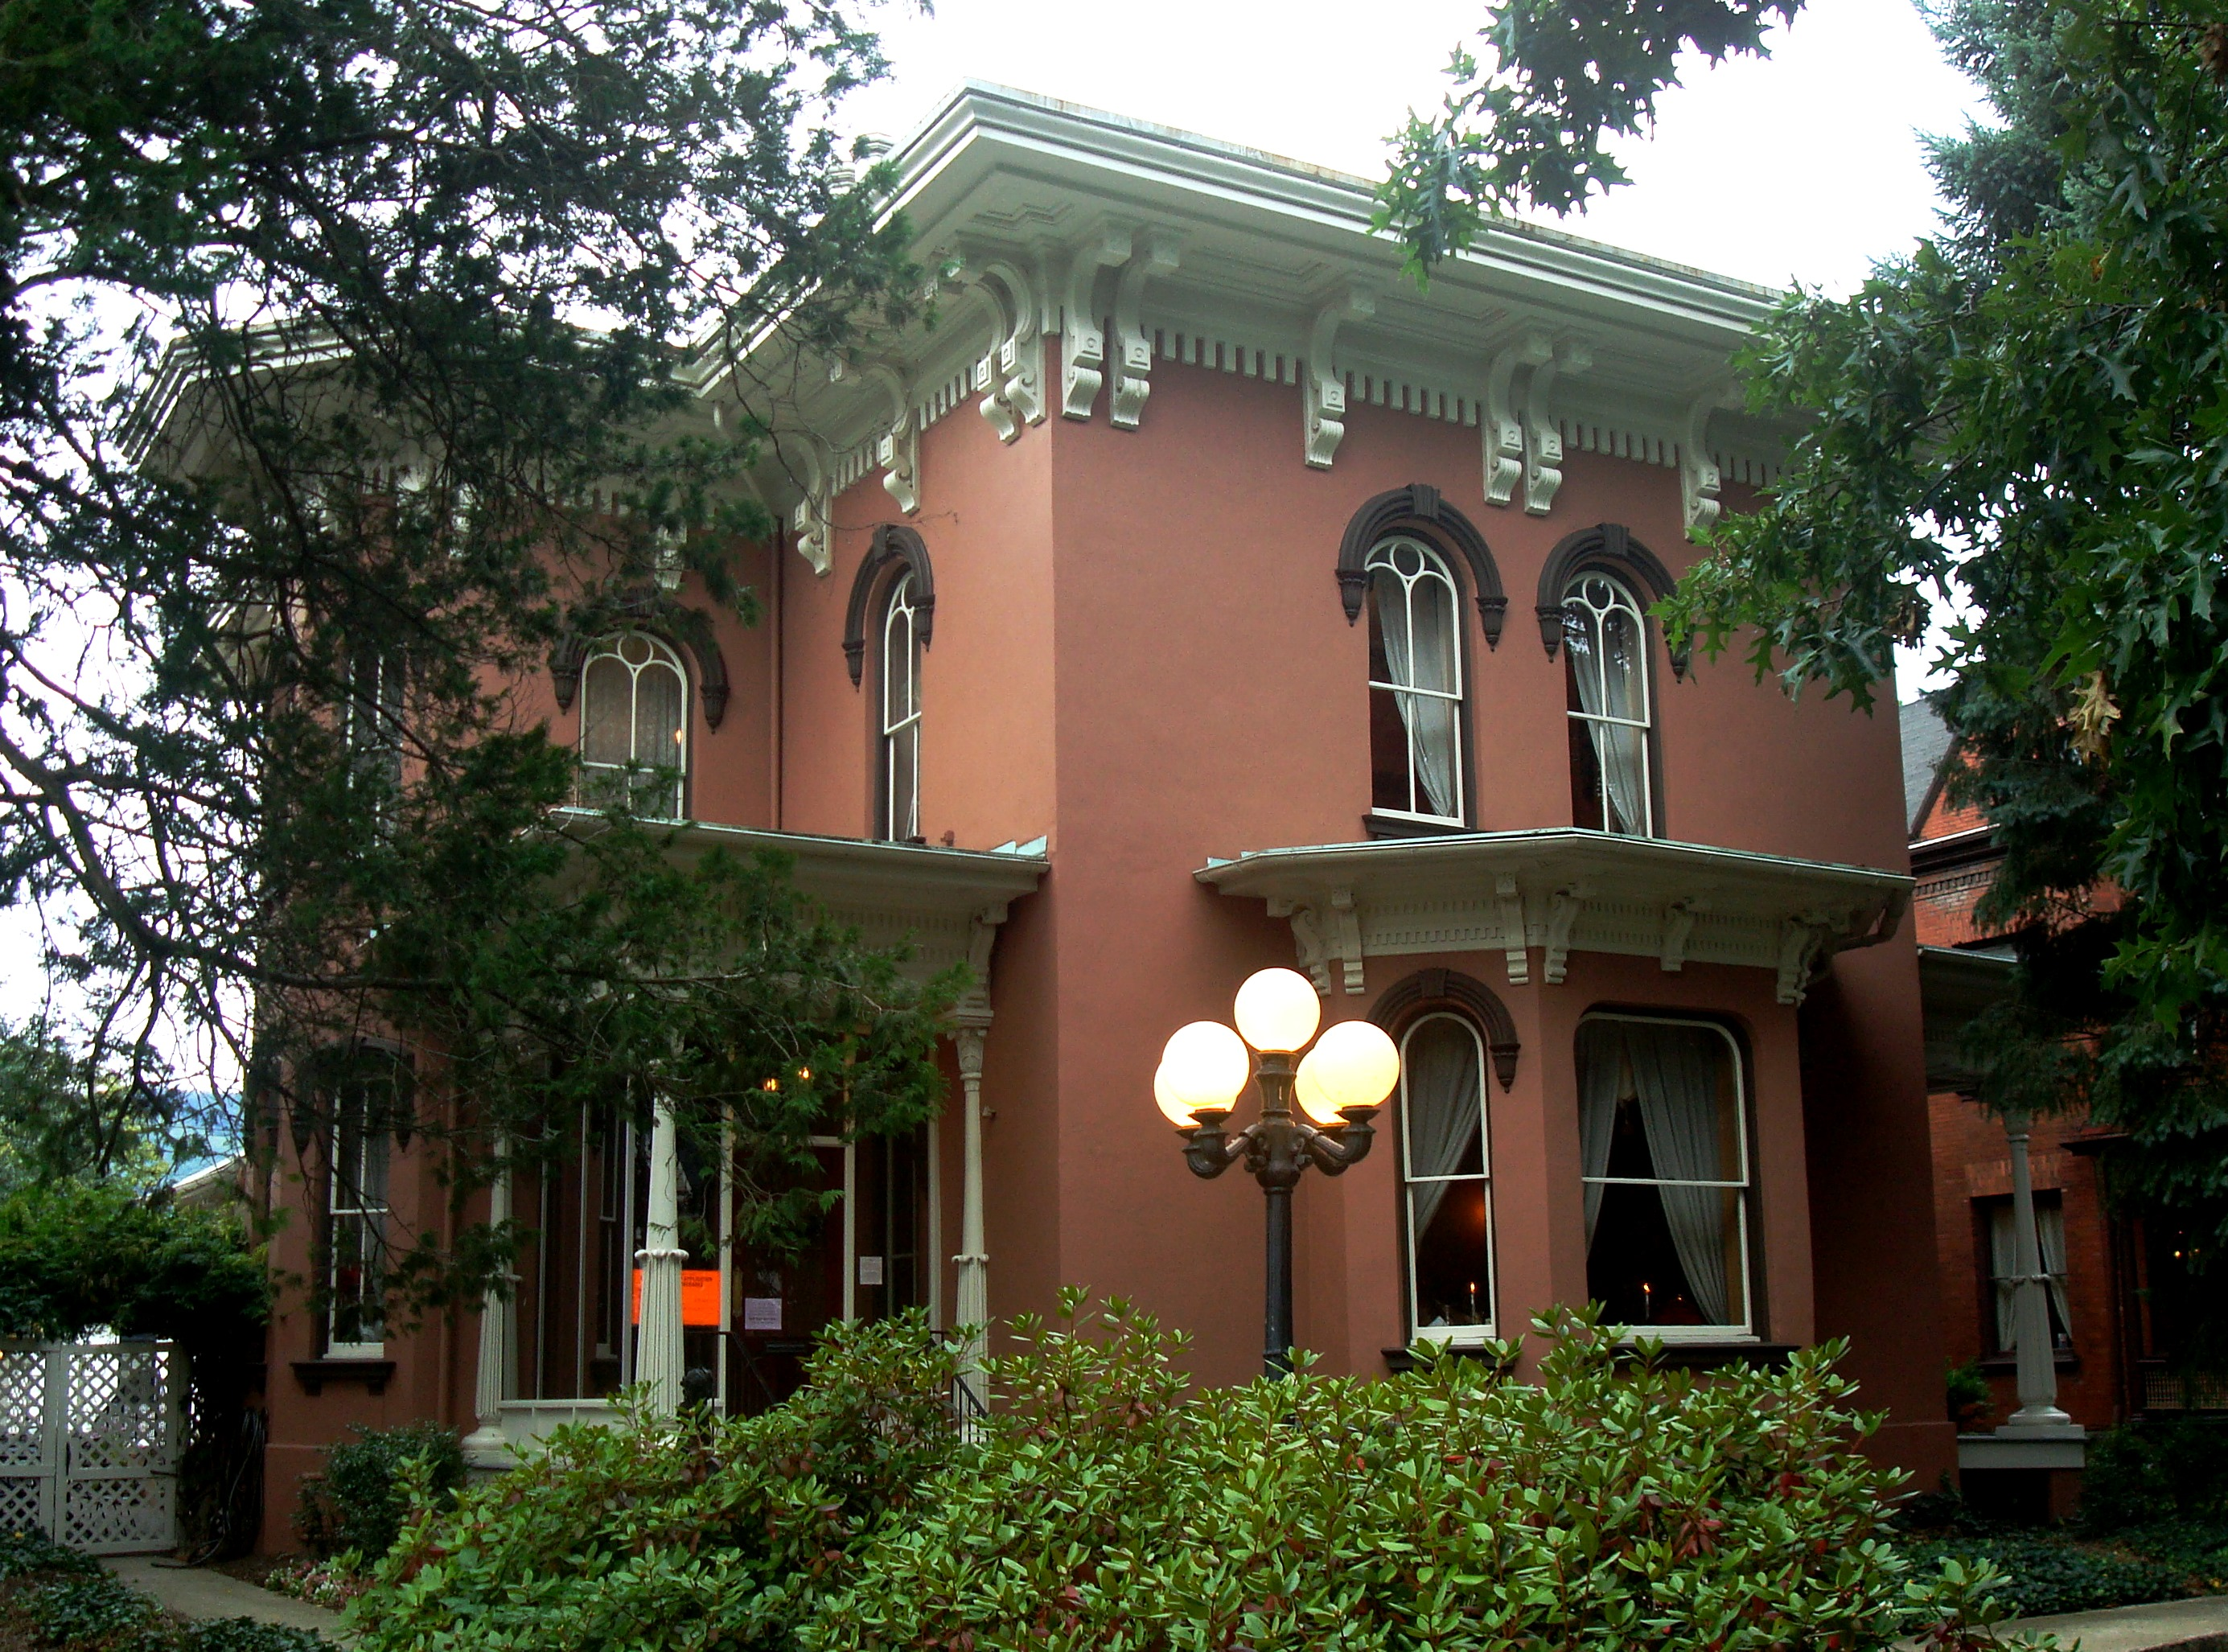 The Peter Herdic House, at 407 West Fourth Street, one of the original homes on Williamsport's Millionaires Row, is the centerpiece of the historic district. The building is now a fine-dining restaurant but is also maintained as a small museum.